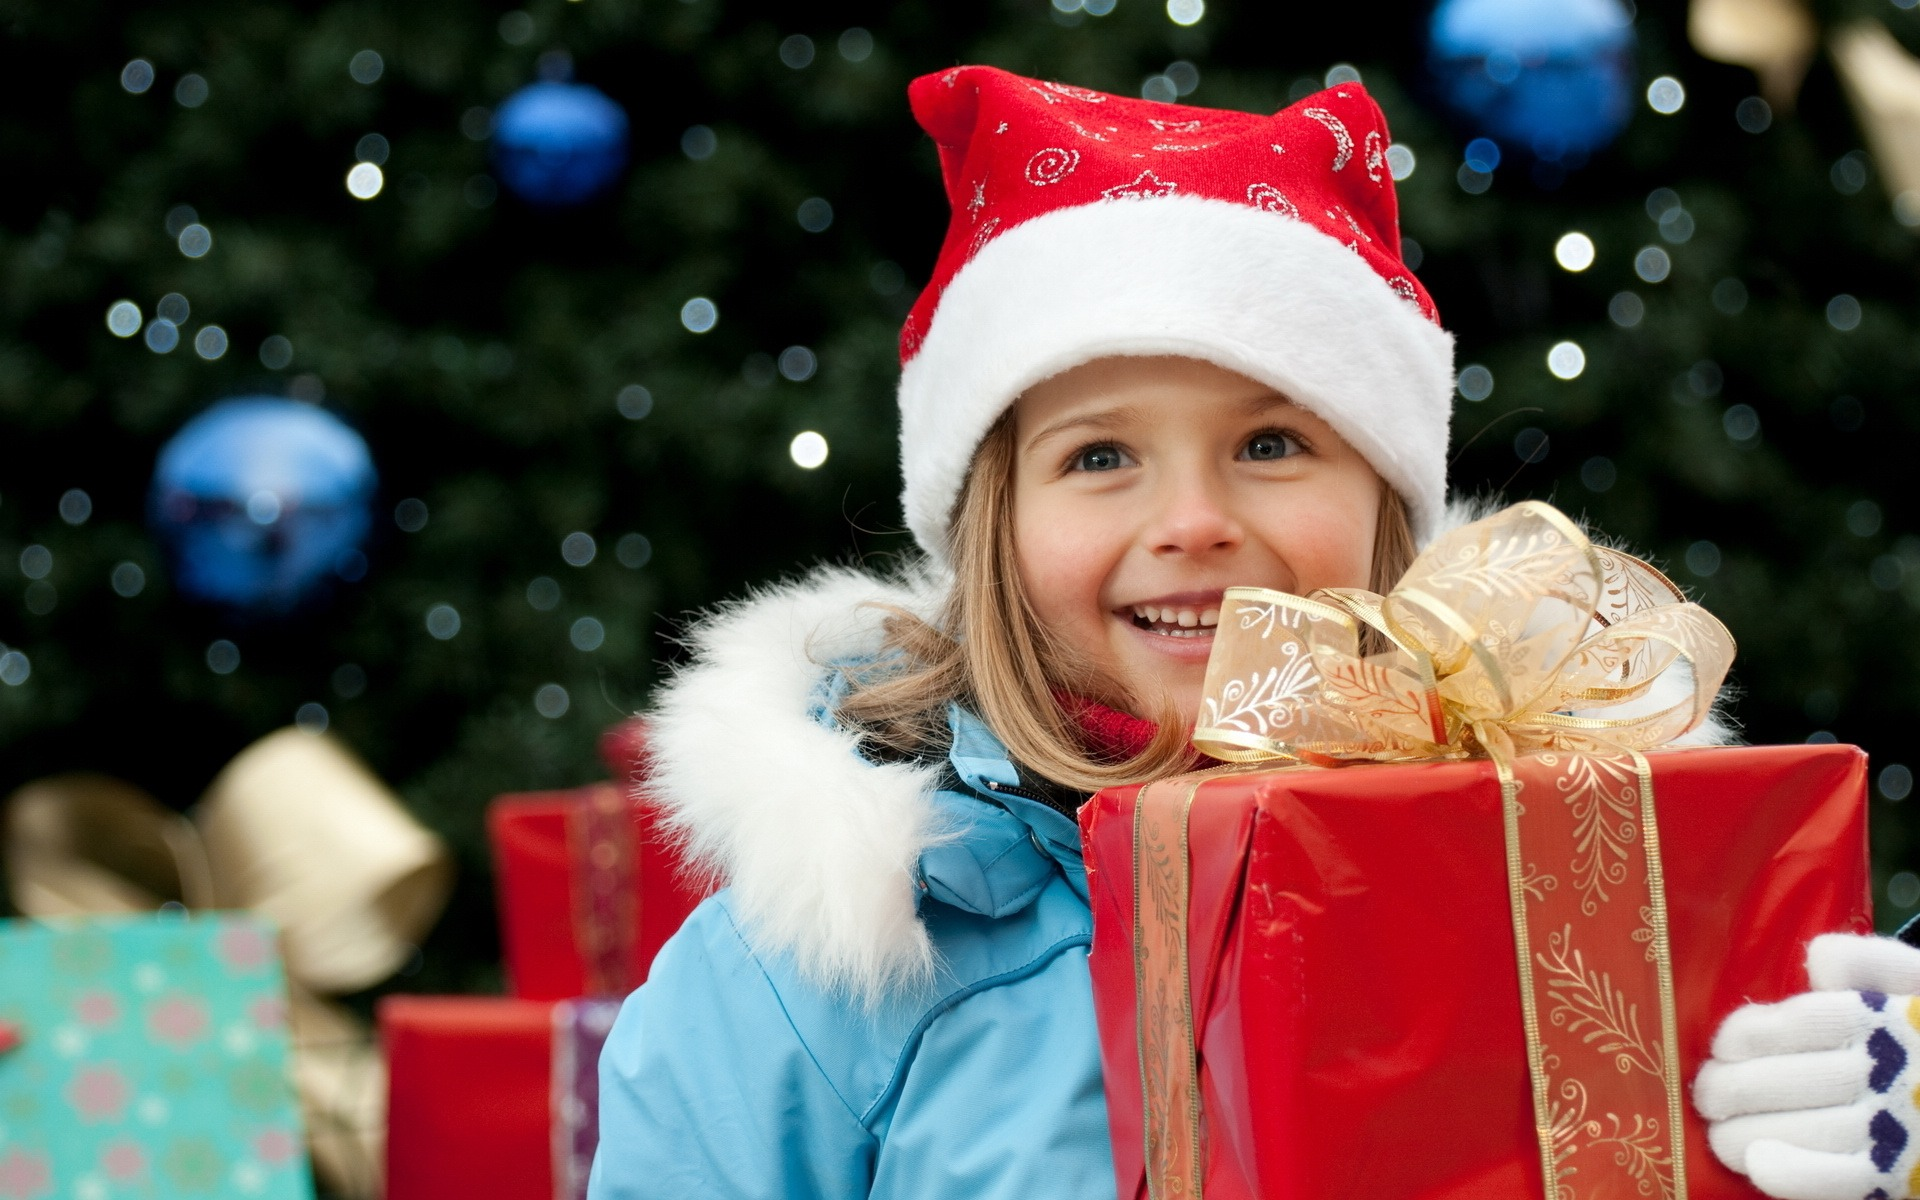 Cute Boy with Christmas Gifts Wallpaper